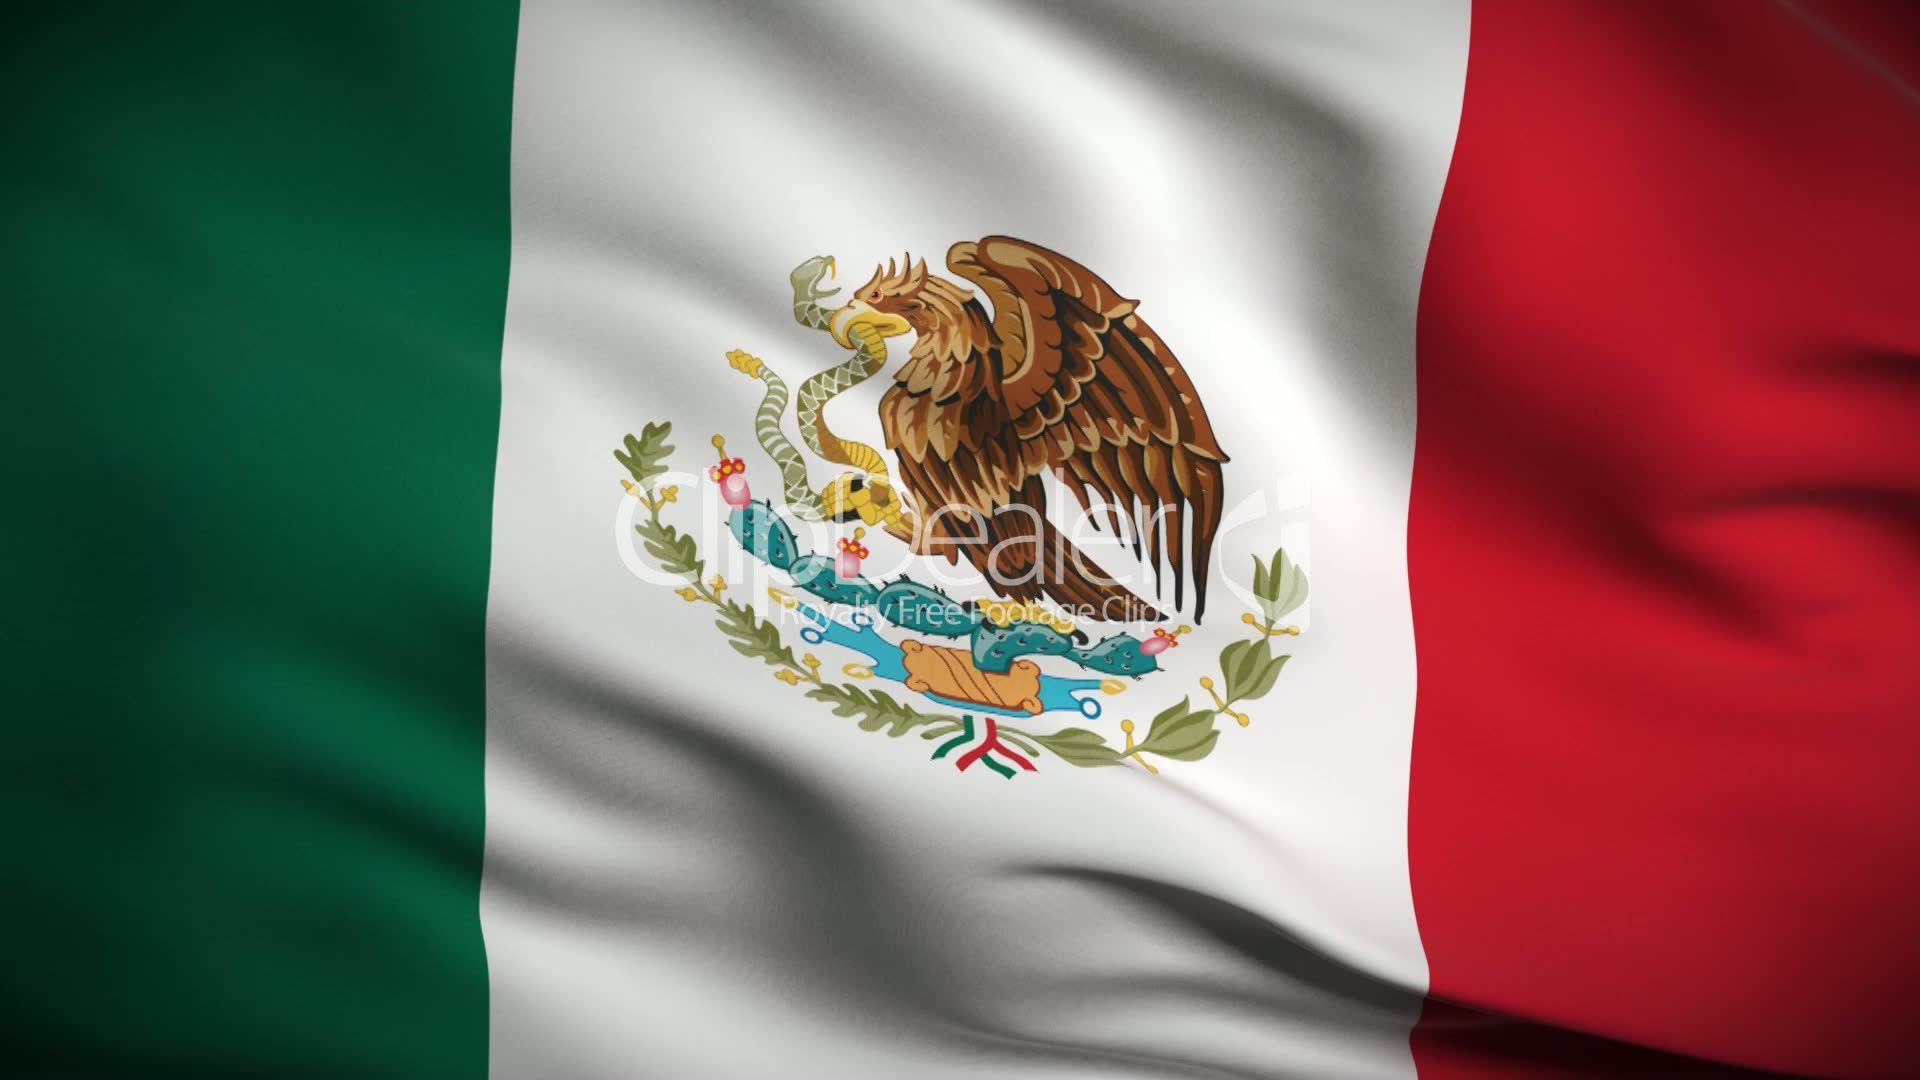 Mexico Flag Wallpaper HD Places to Visit Pinterest